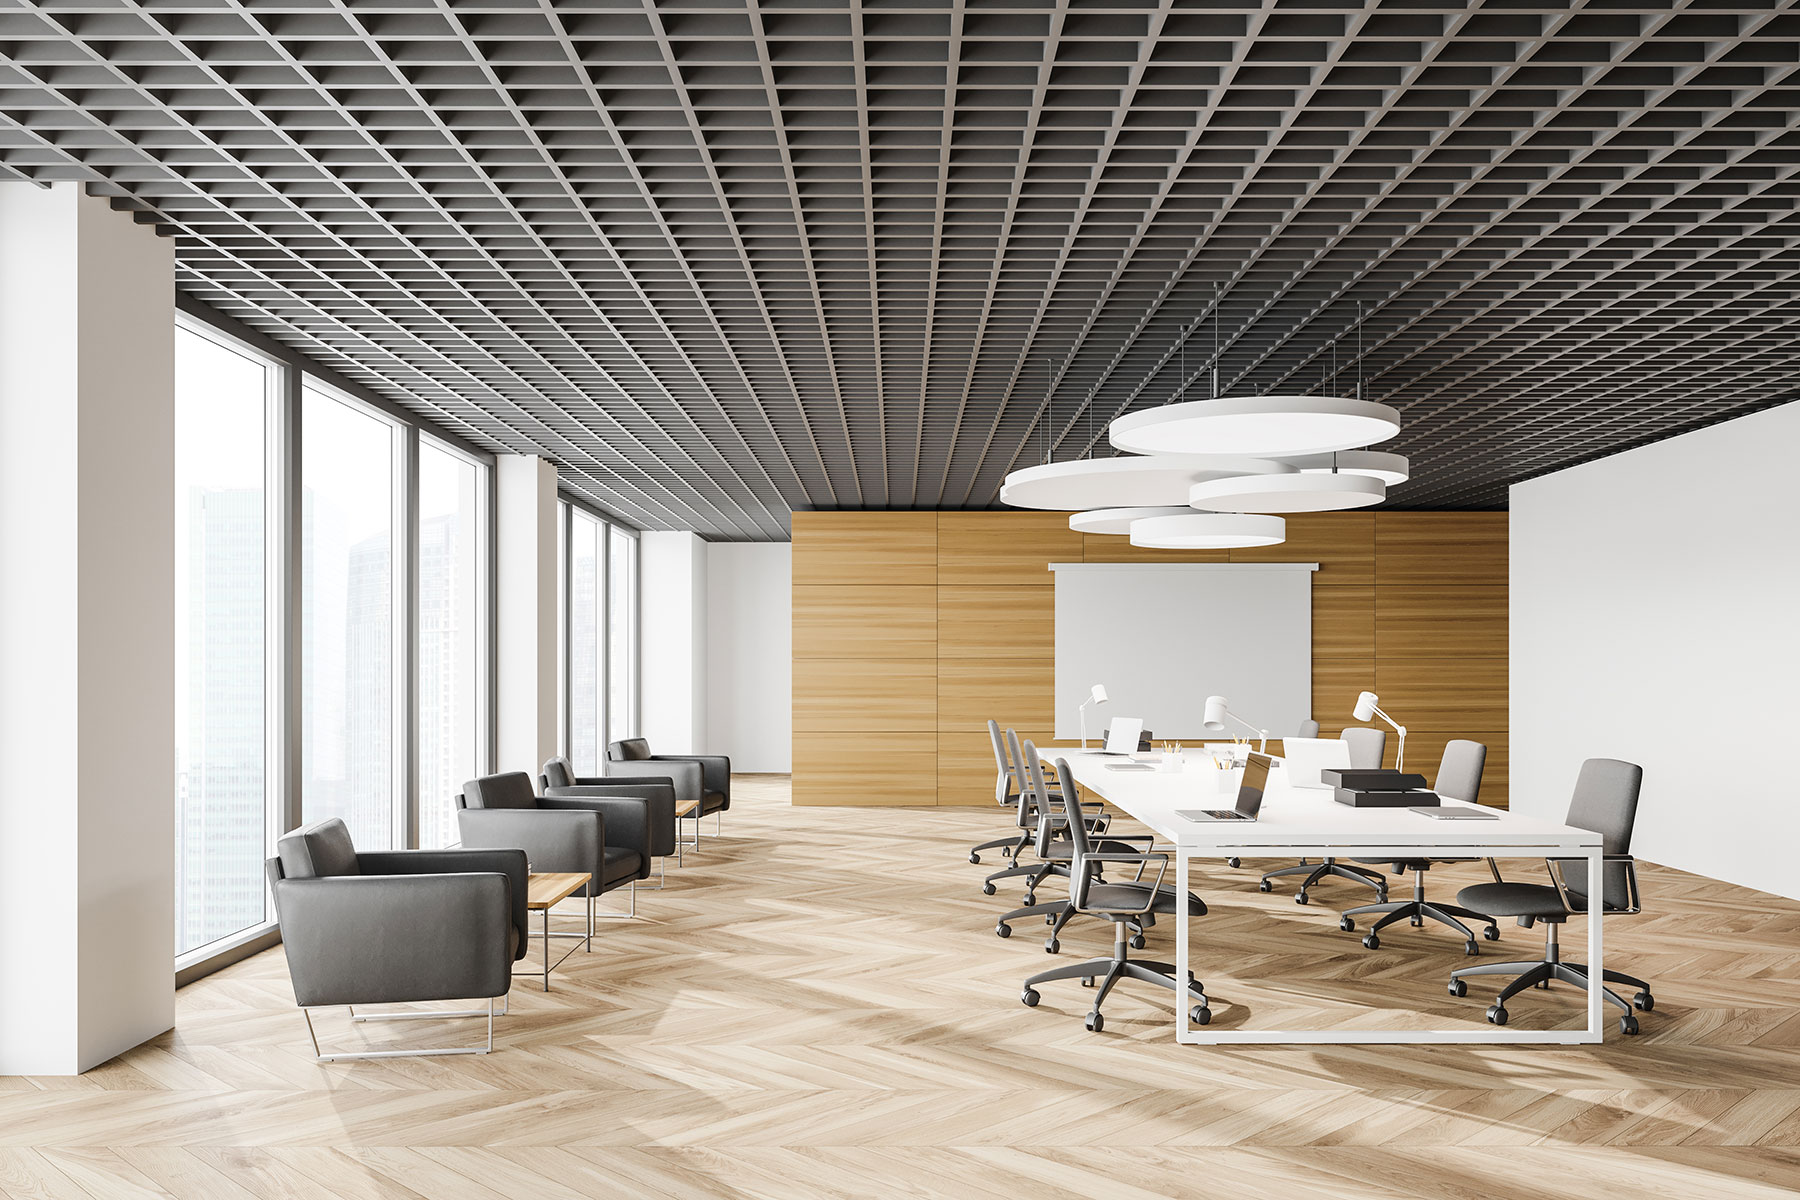 Minimize Areas of Contact in the Workplace